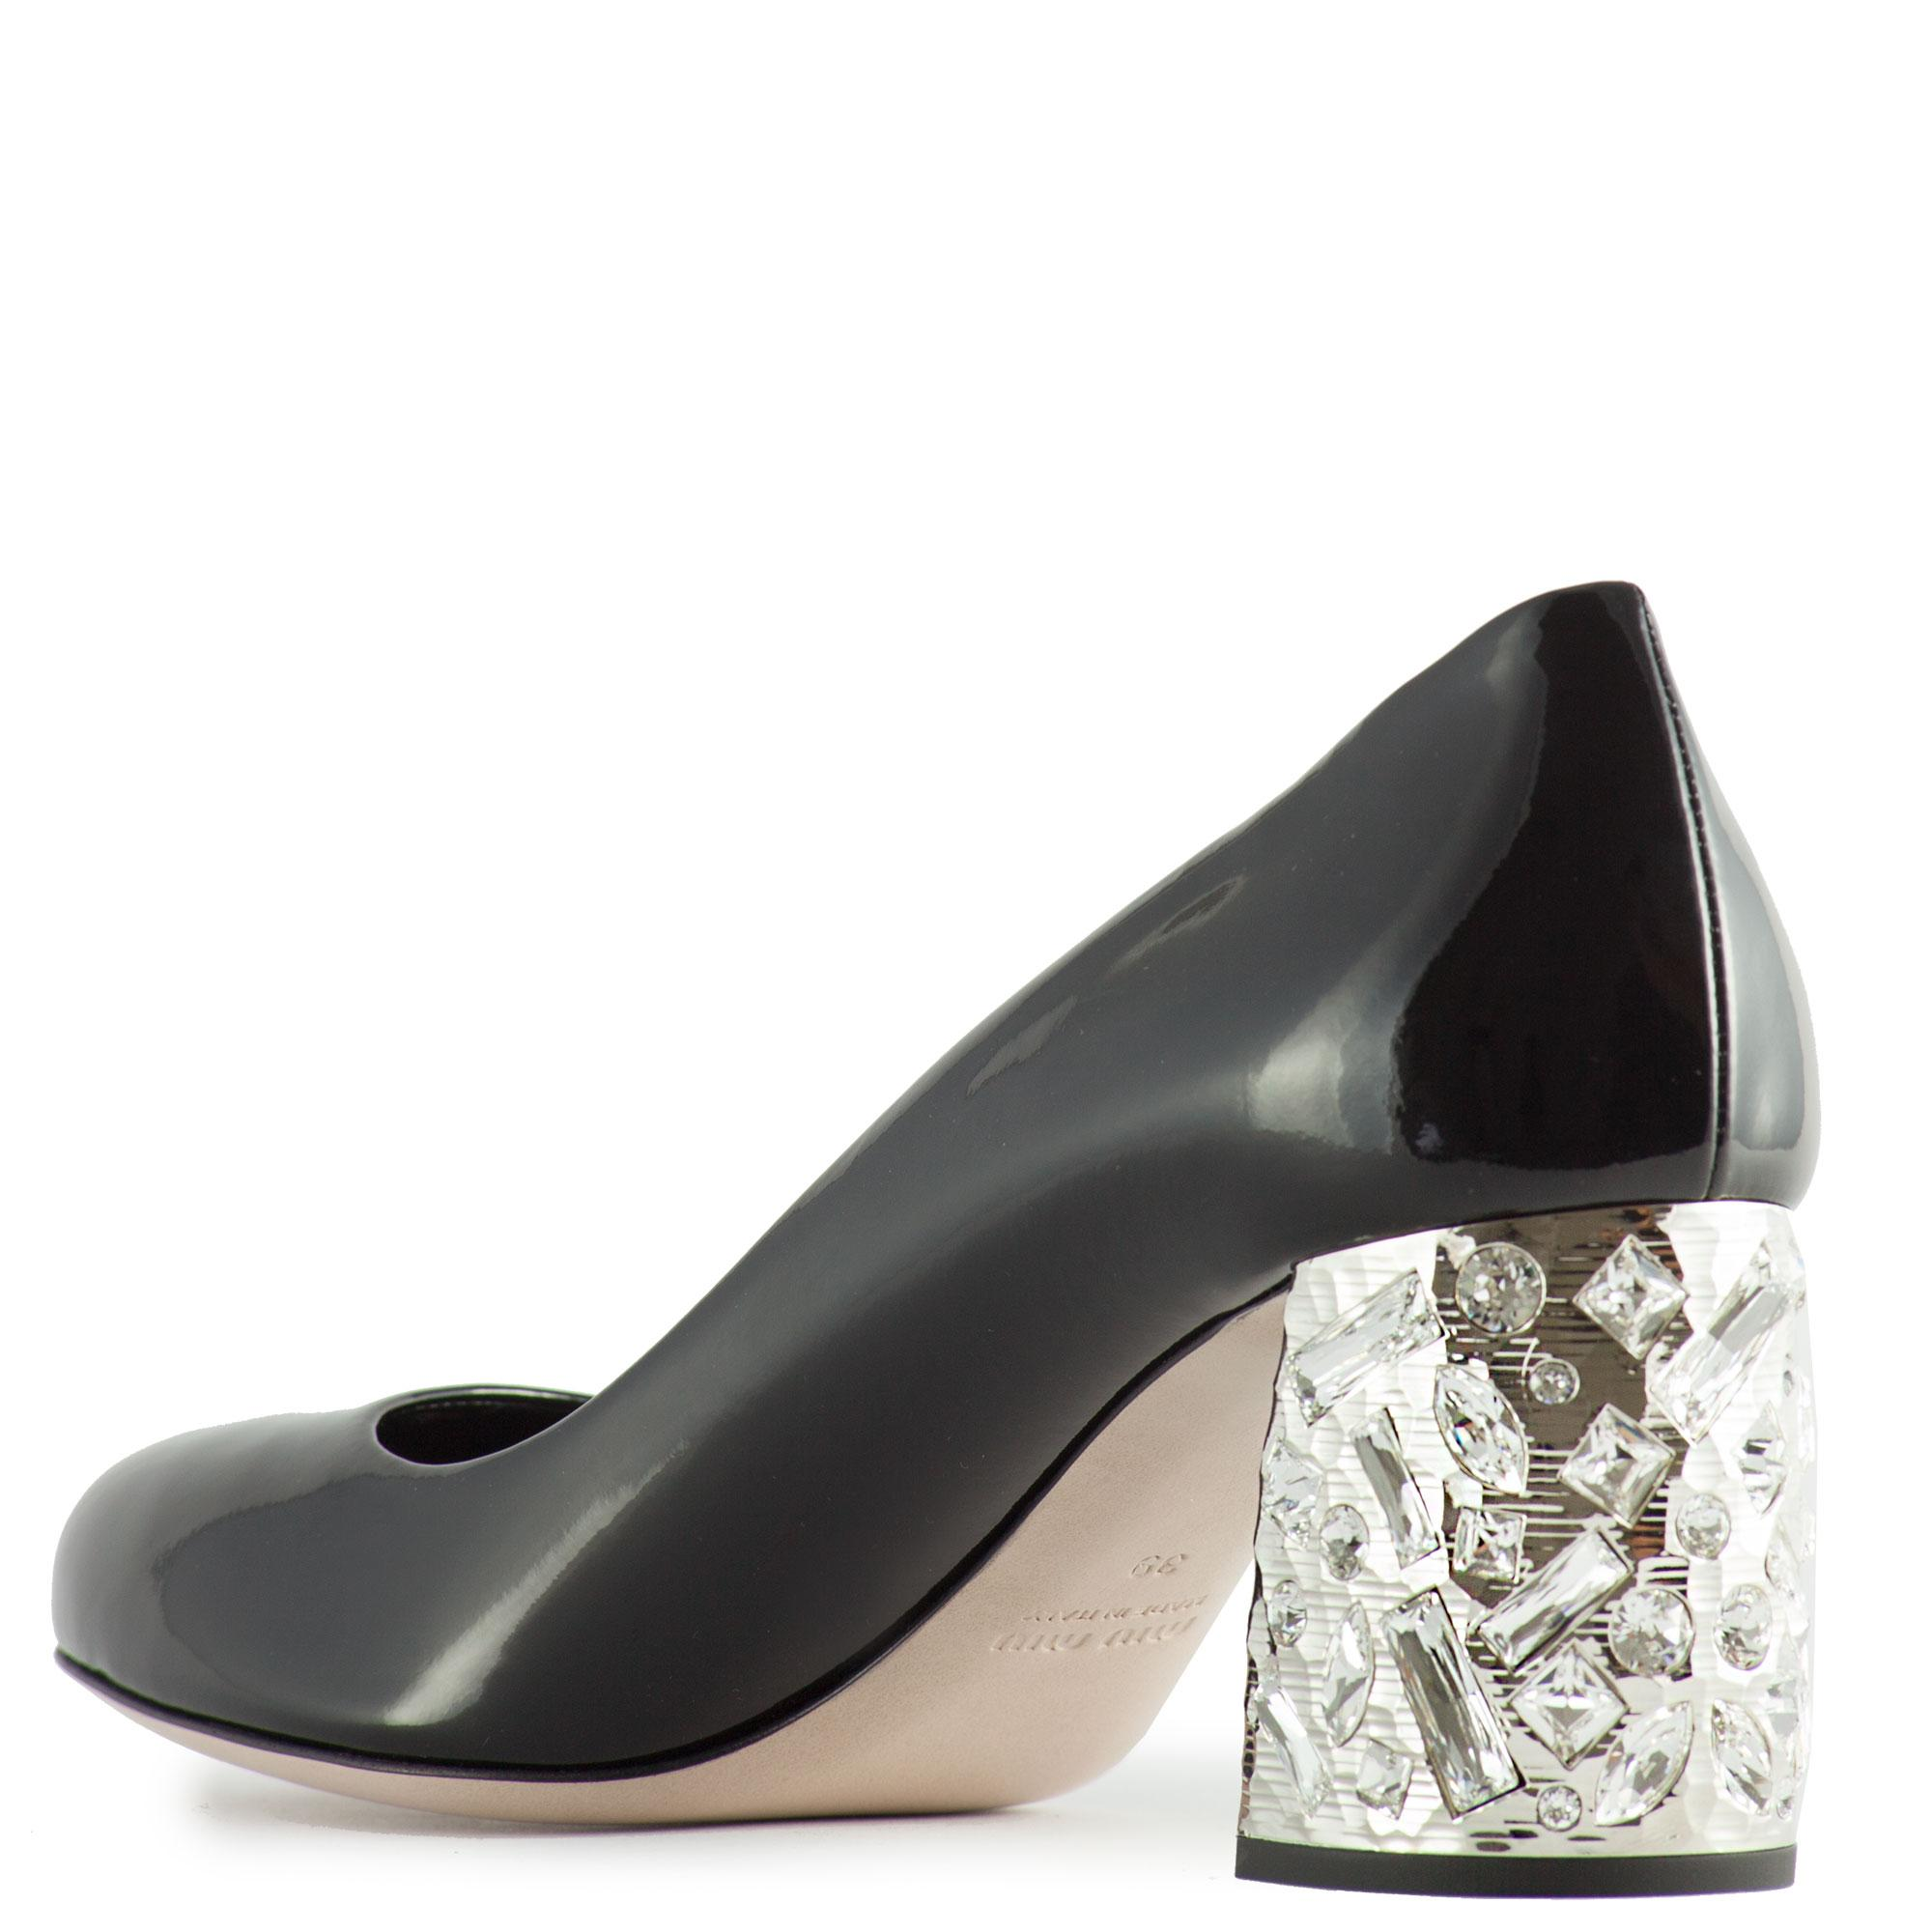 Dior Silhouette Round Shoes Black